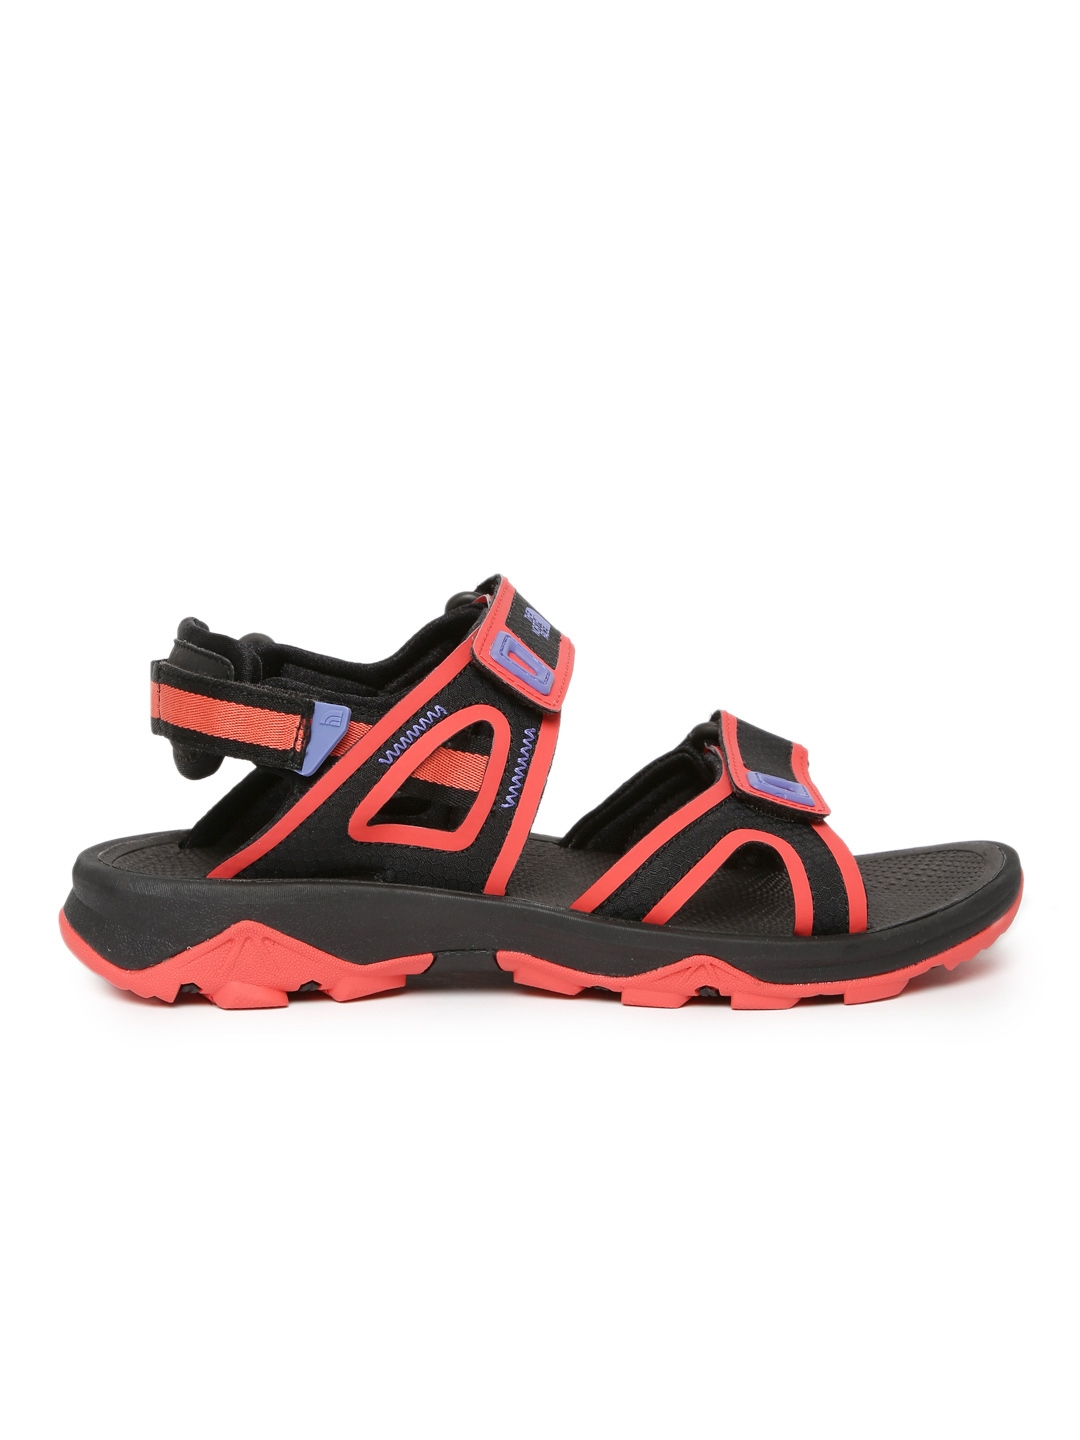 0e6a924f4 Buy The North Face Women Red & Black BASE CAMP HEDGEHOG II Sports ...